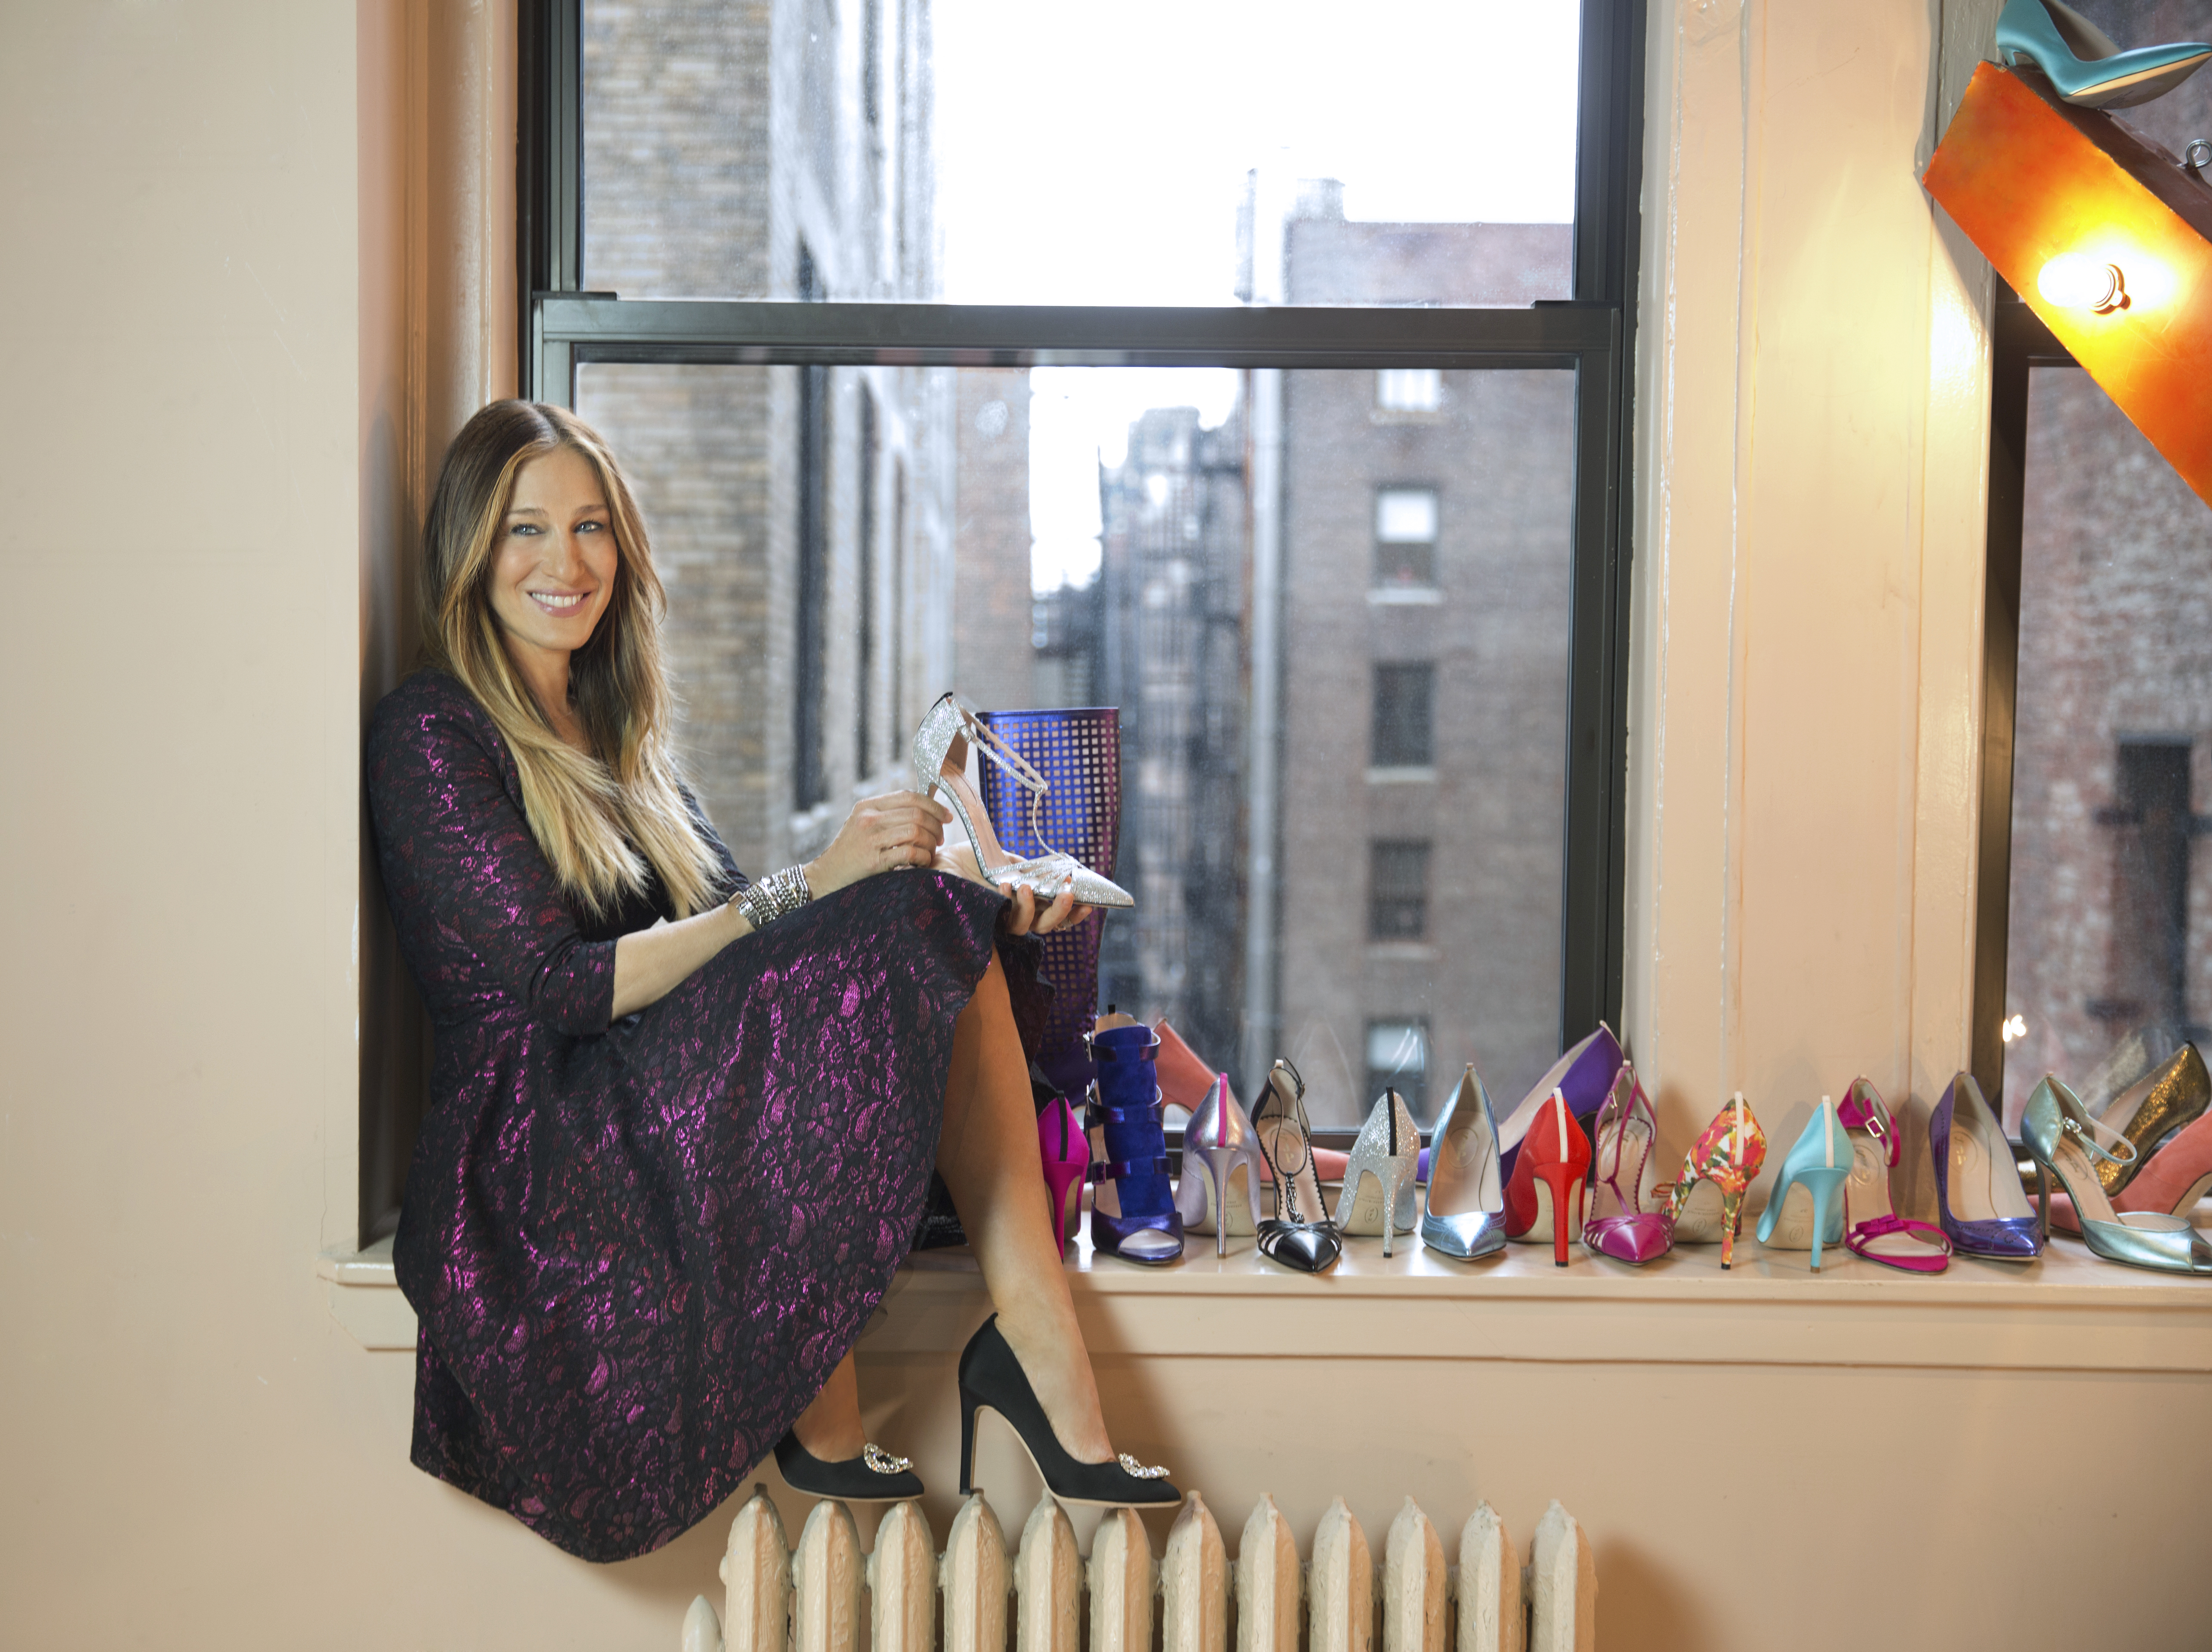 Sarah Jessica Parket surrounded by SJP by Sarah Jessica Parker shoes.